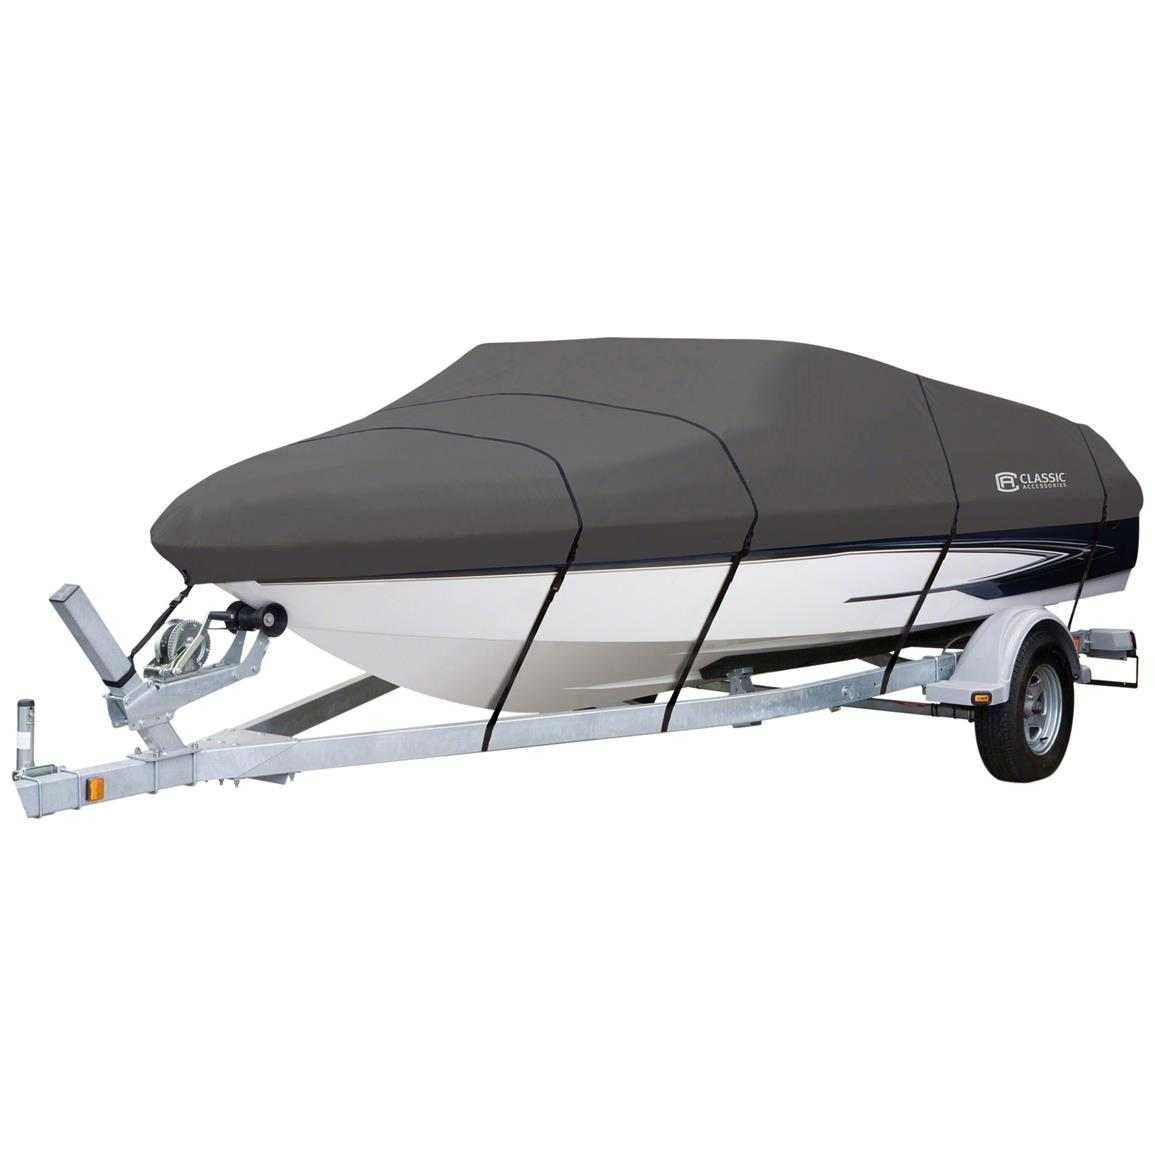 Classic Accessories StormPro Boat Cover